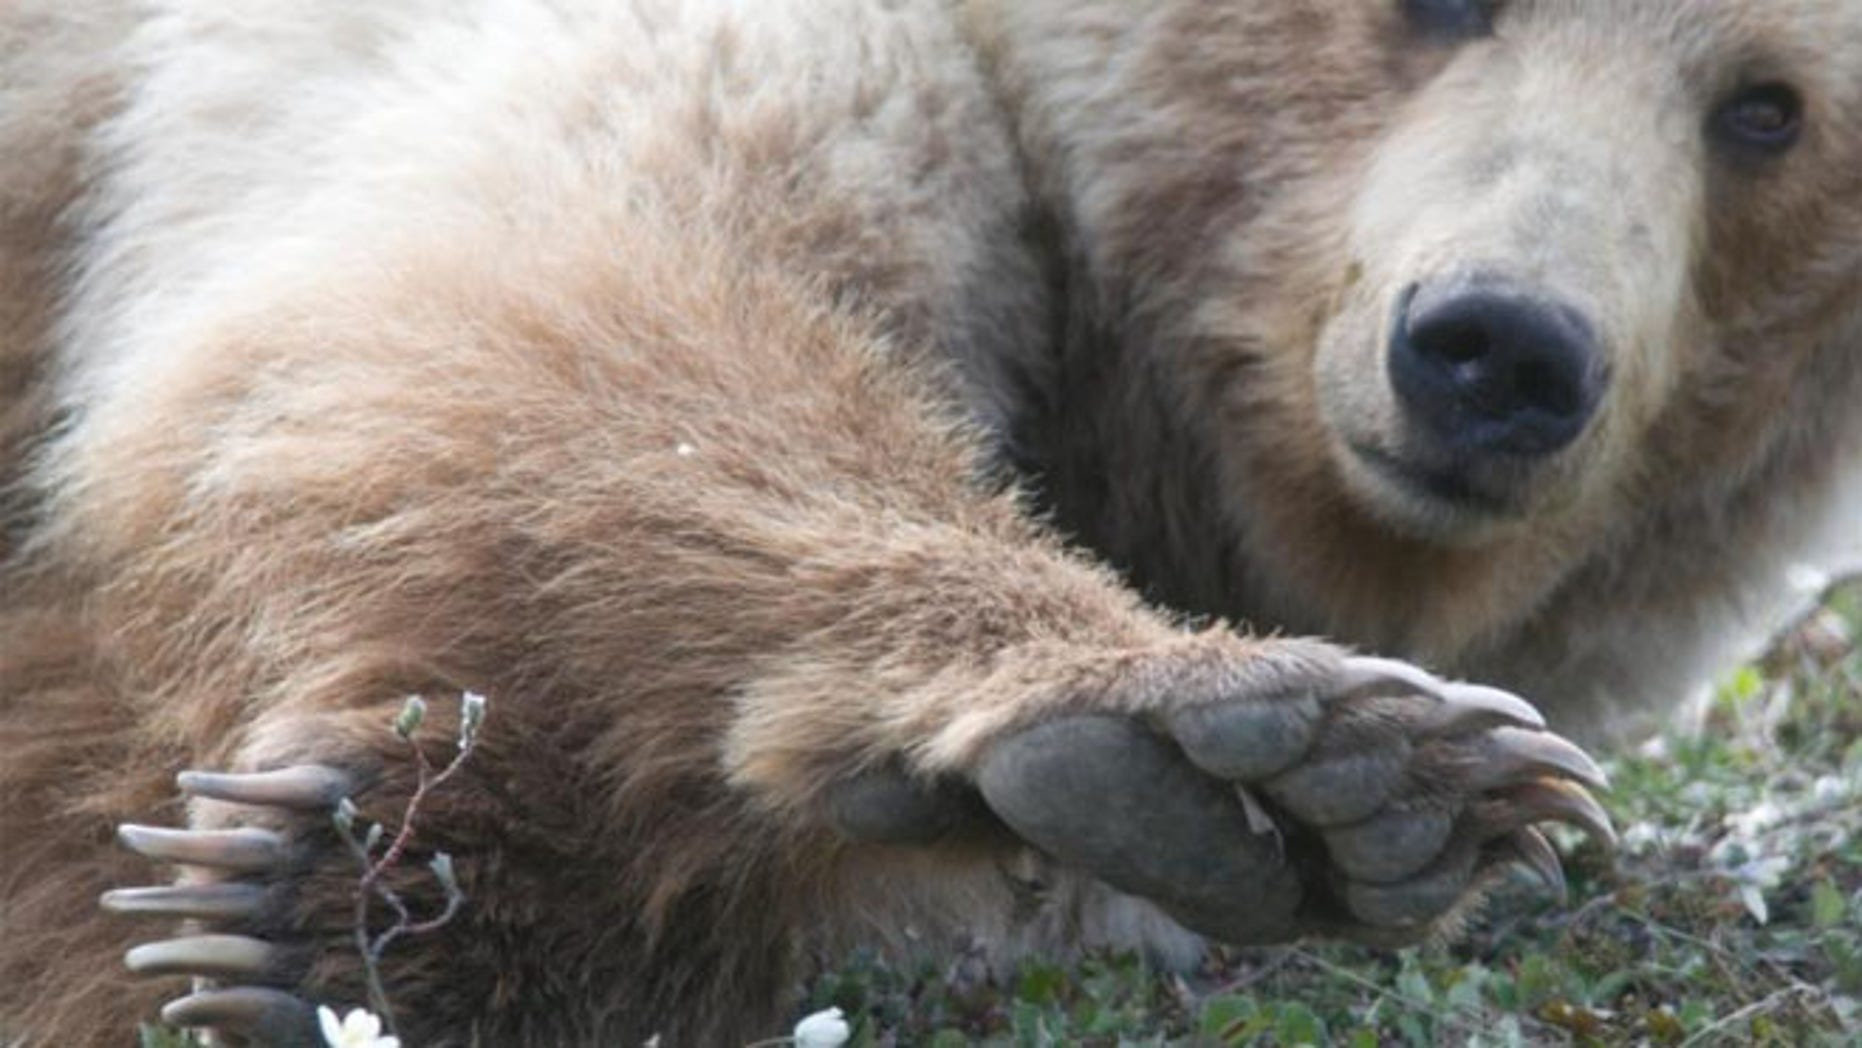 The video shows a close up of the bear as he stumbles then realizes that rolling down the hill was way more fun.